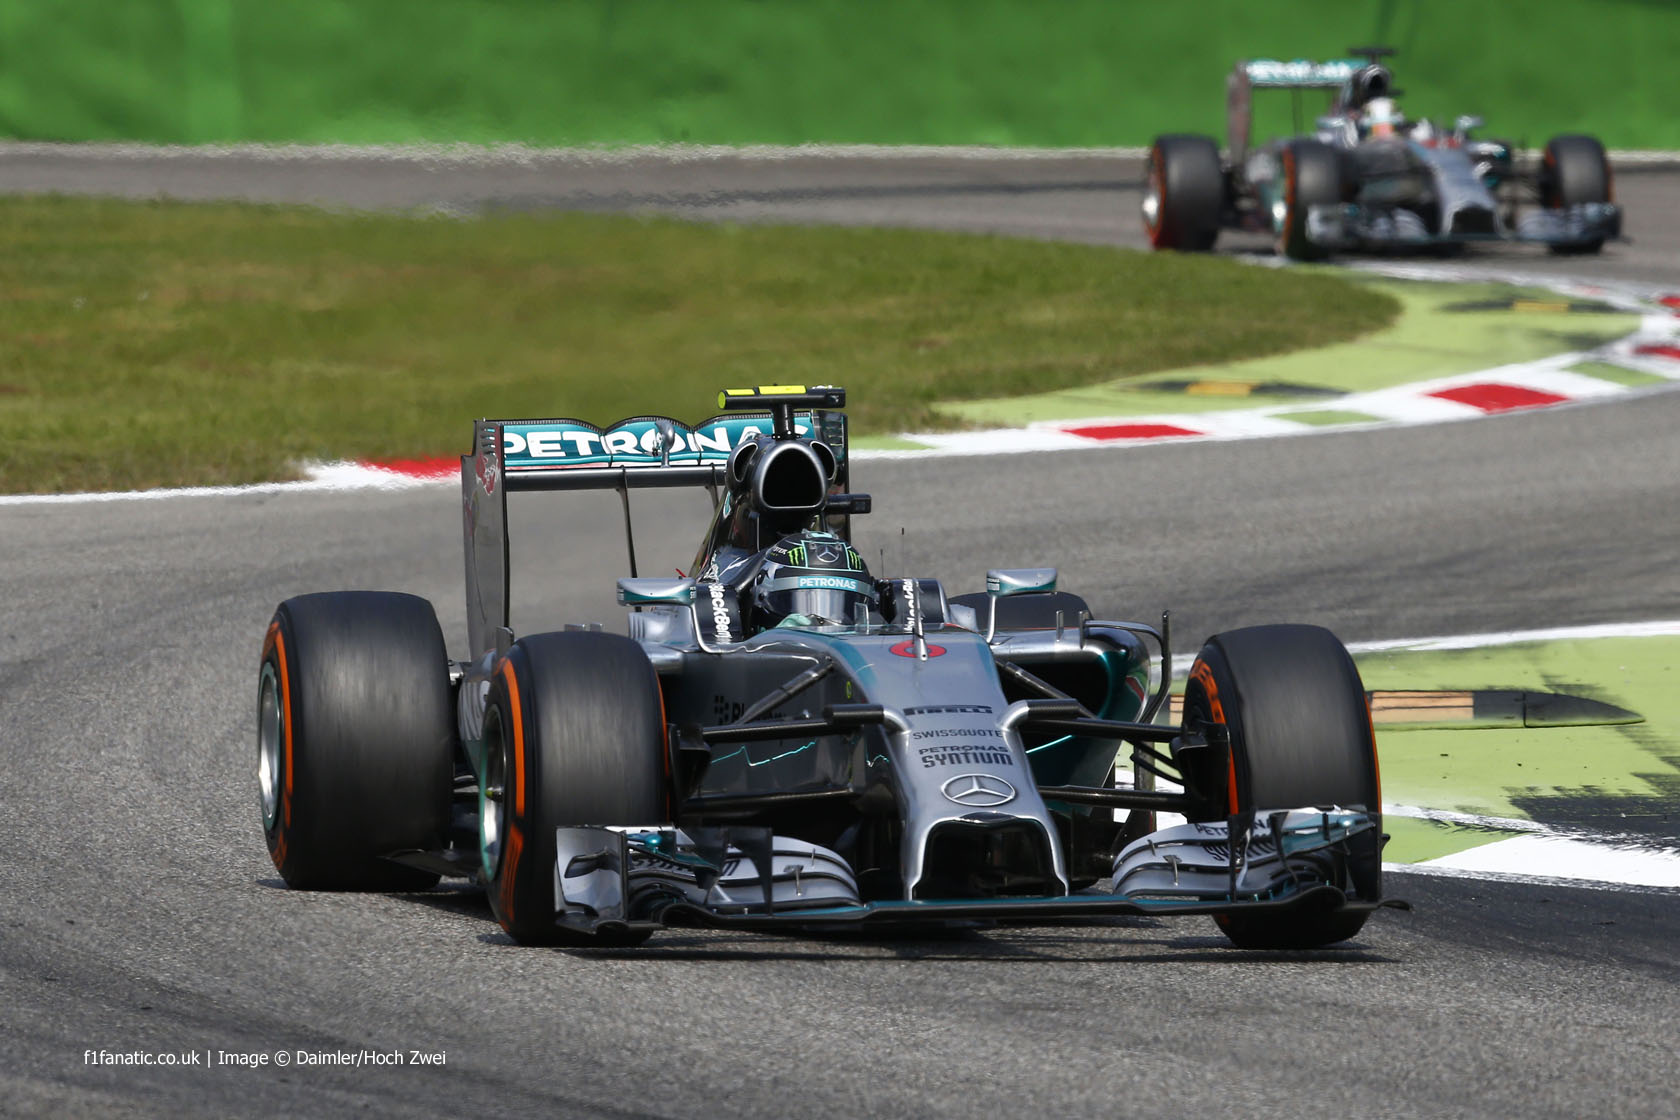 hight resolution of nico rosberg mercedes monza 2014